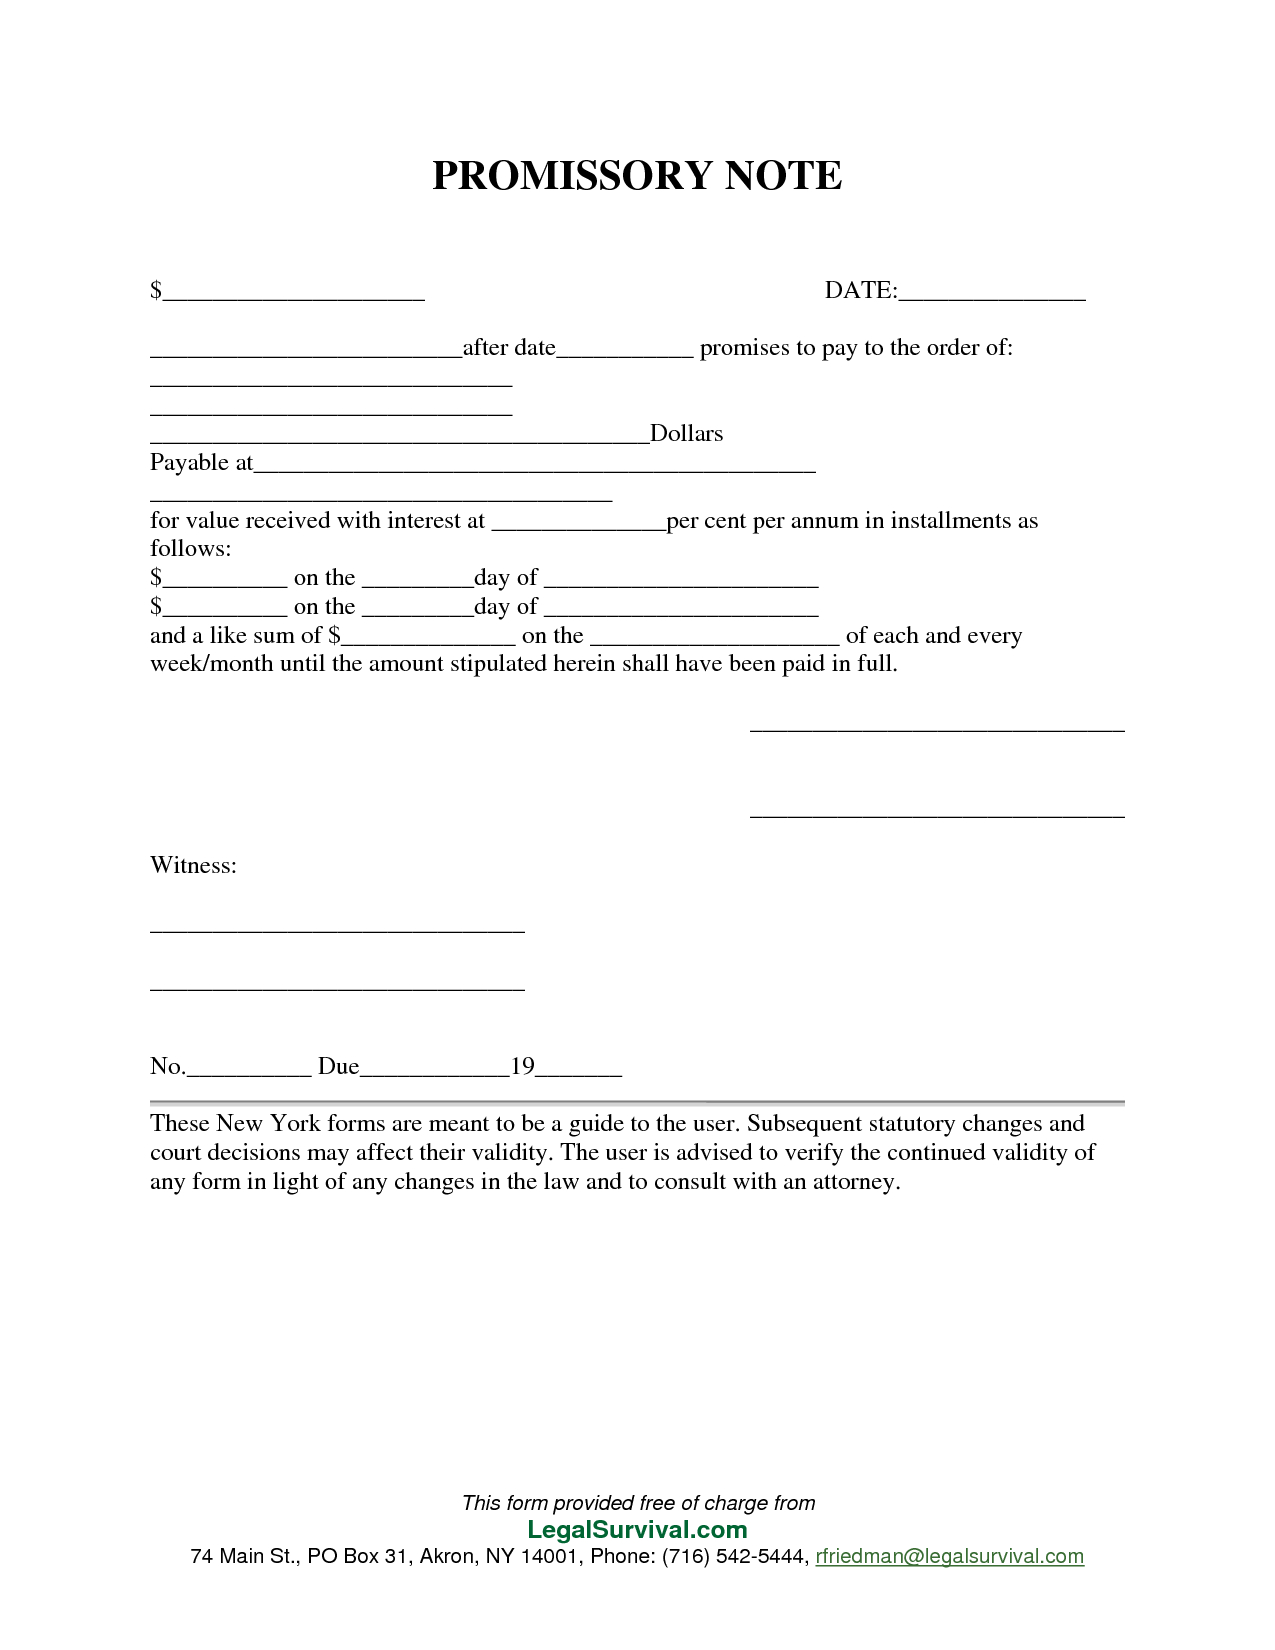 Permalink To Free Promissory Note Template … … | Templates | Pinte… - Free Promissory Note Printable Form